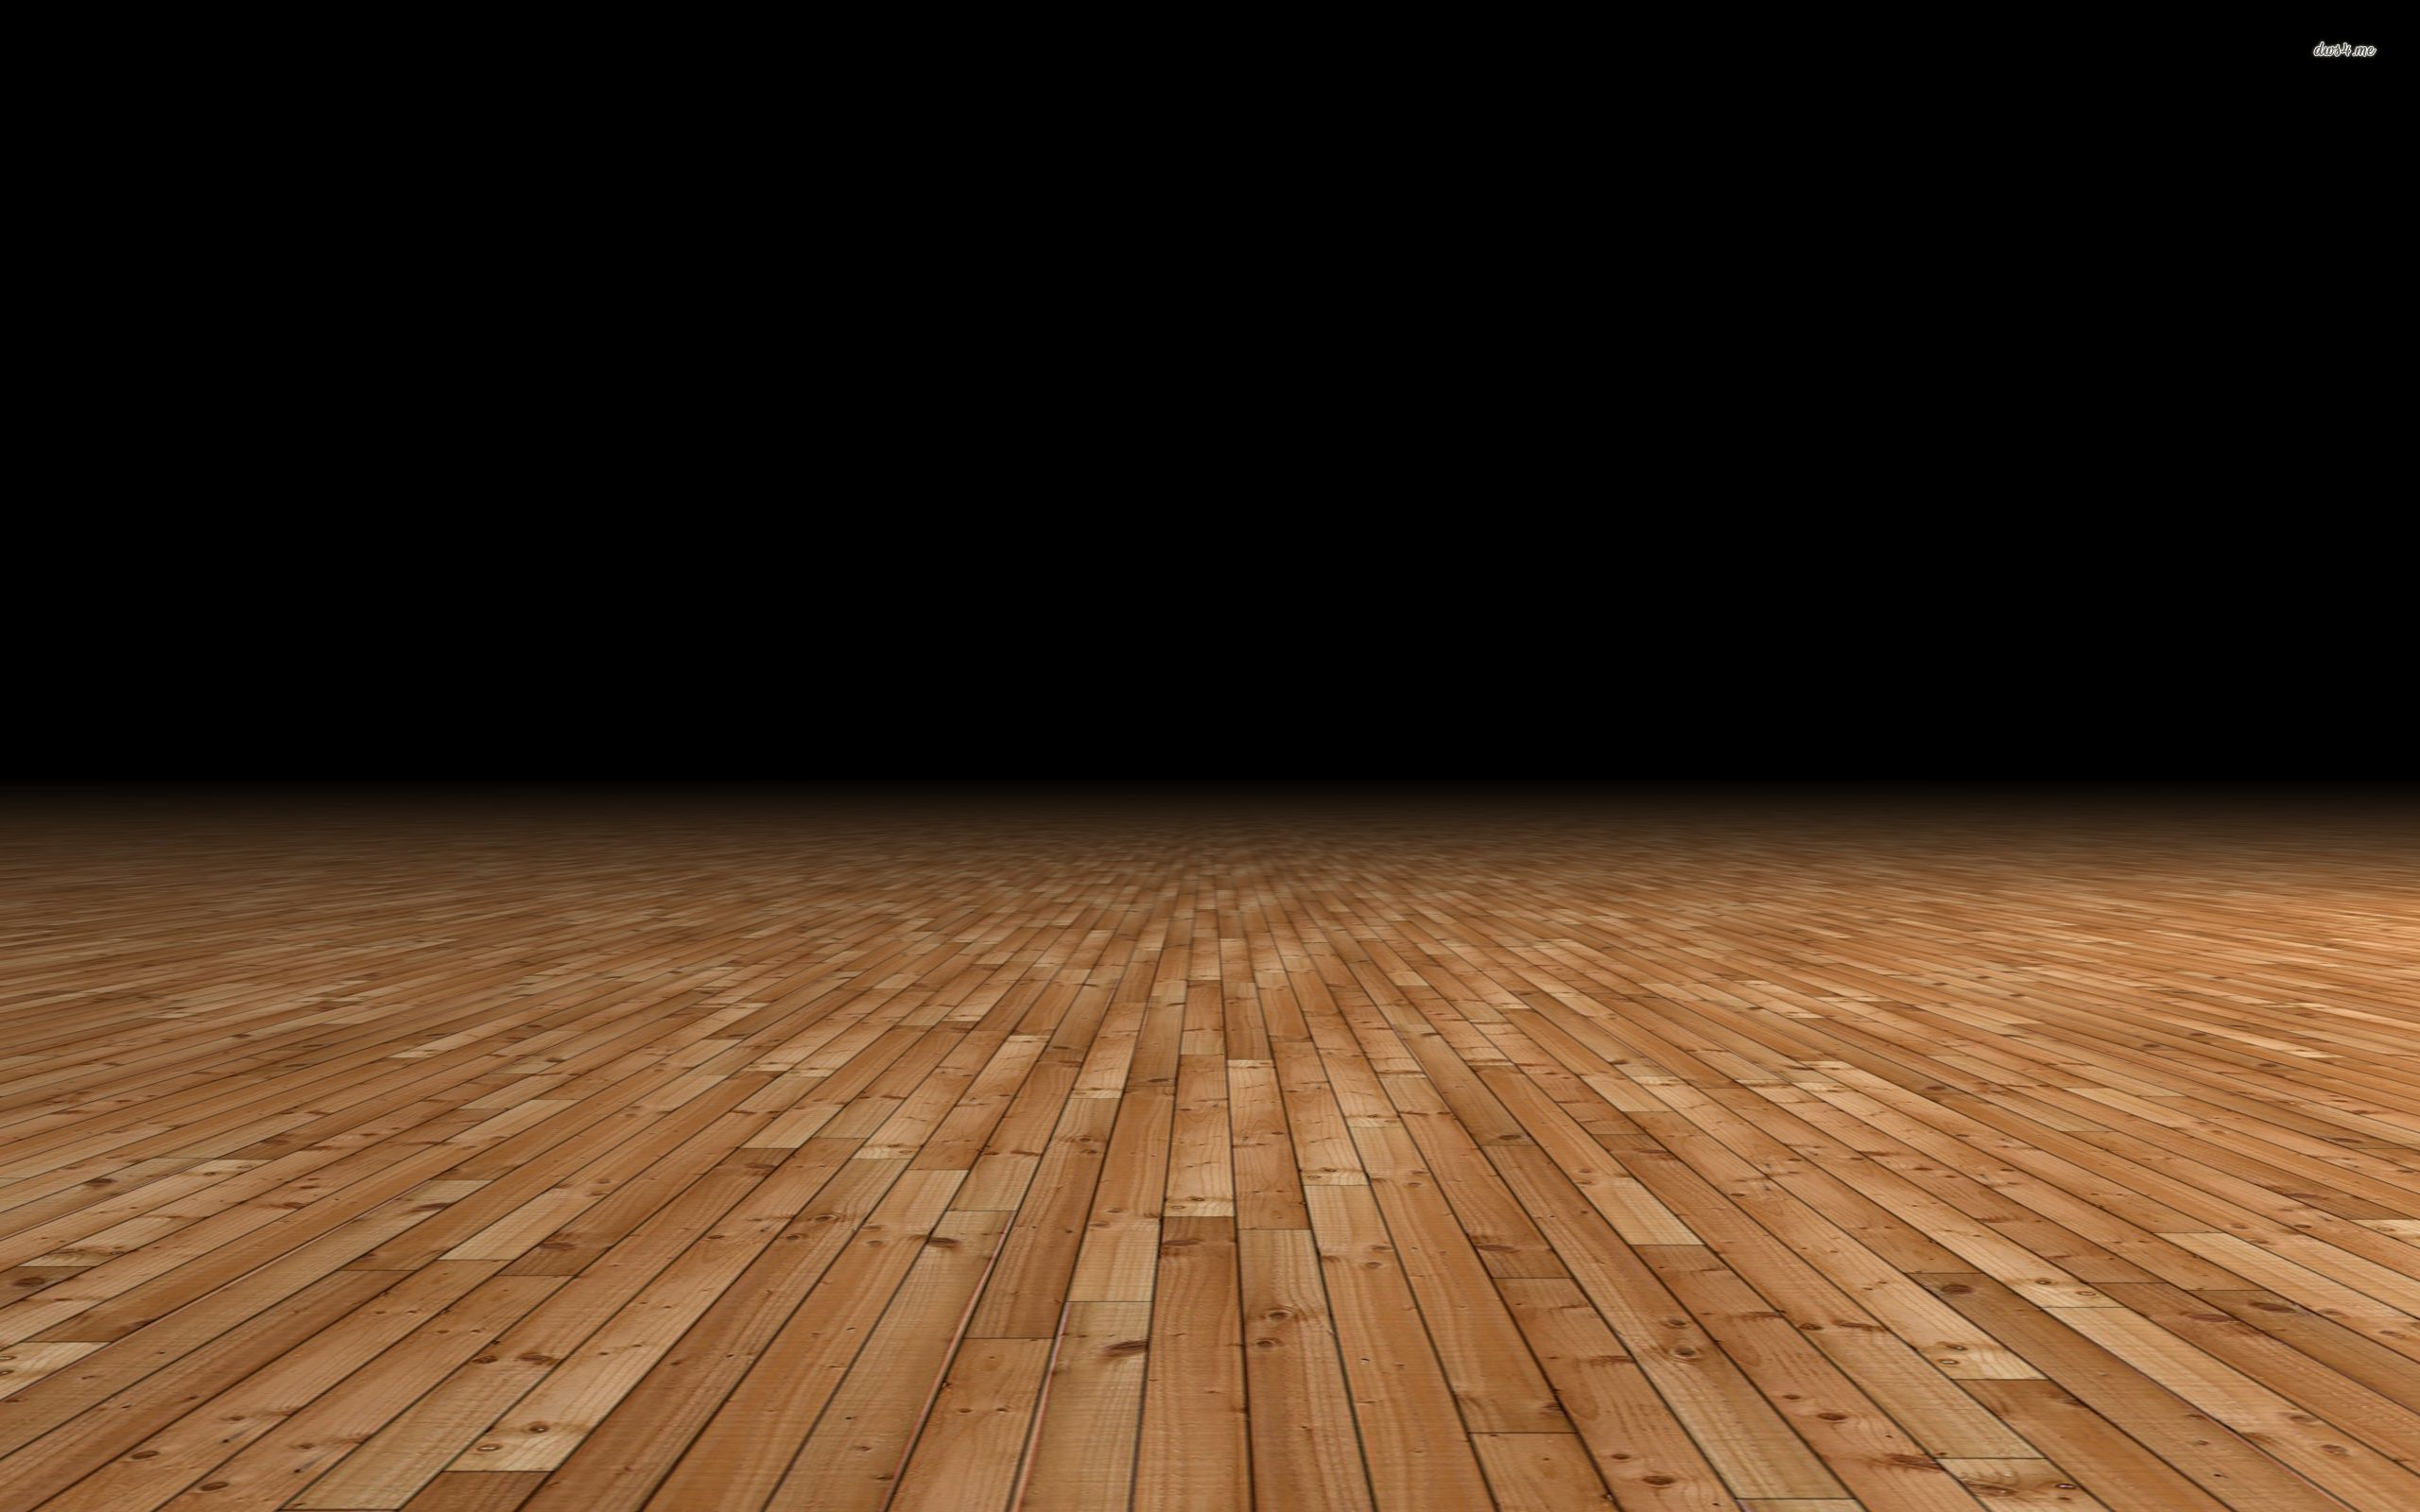 painted basketball plywood court youtube results floor watch floors final